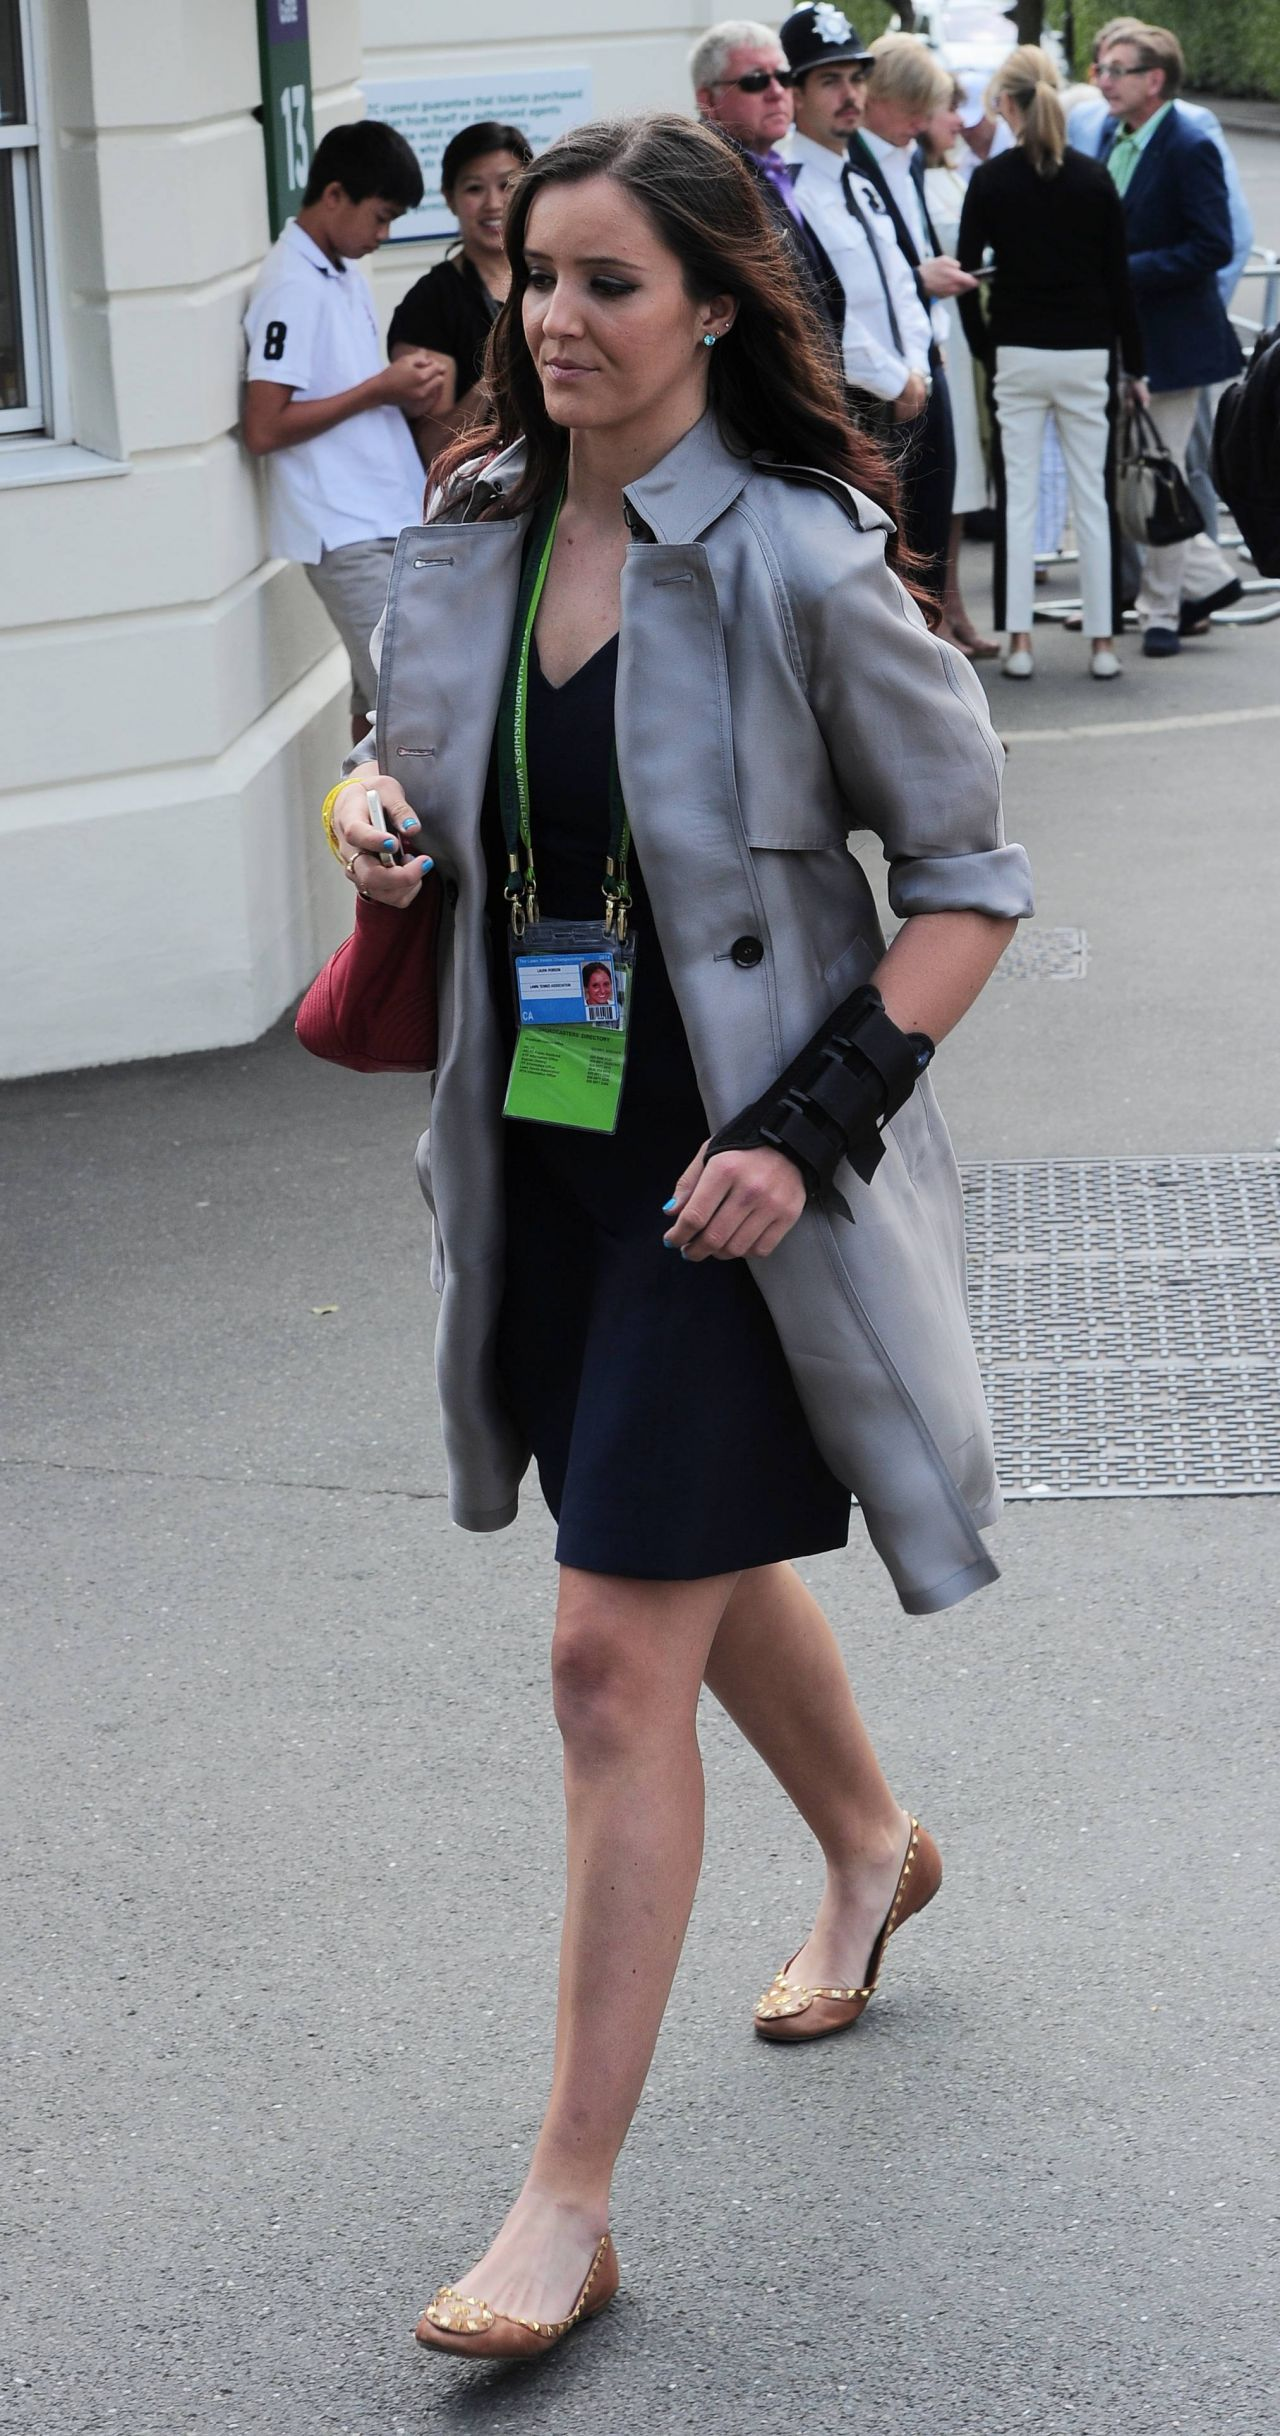 Laura Robson Arriving at Wimbledon in London - June 2014